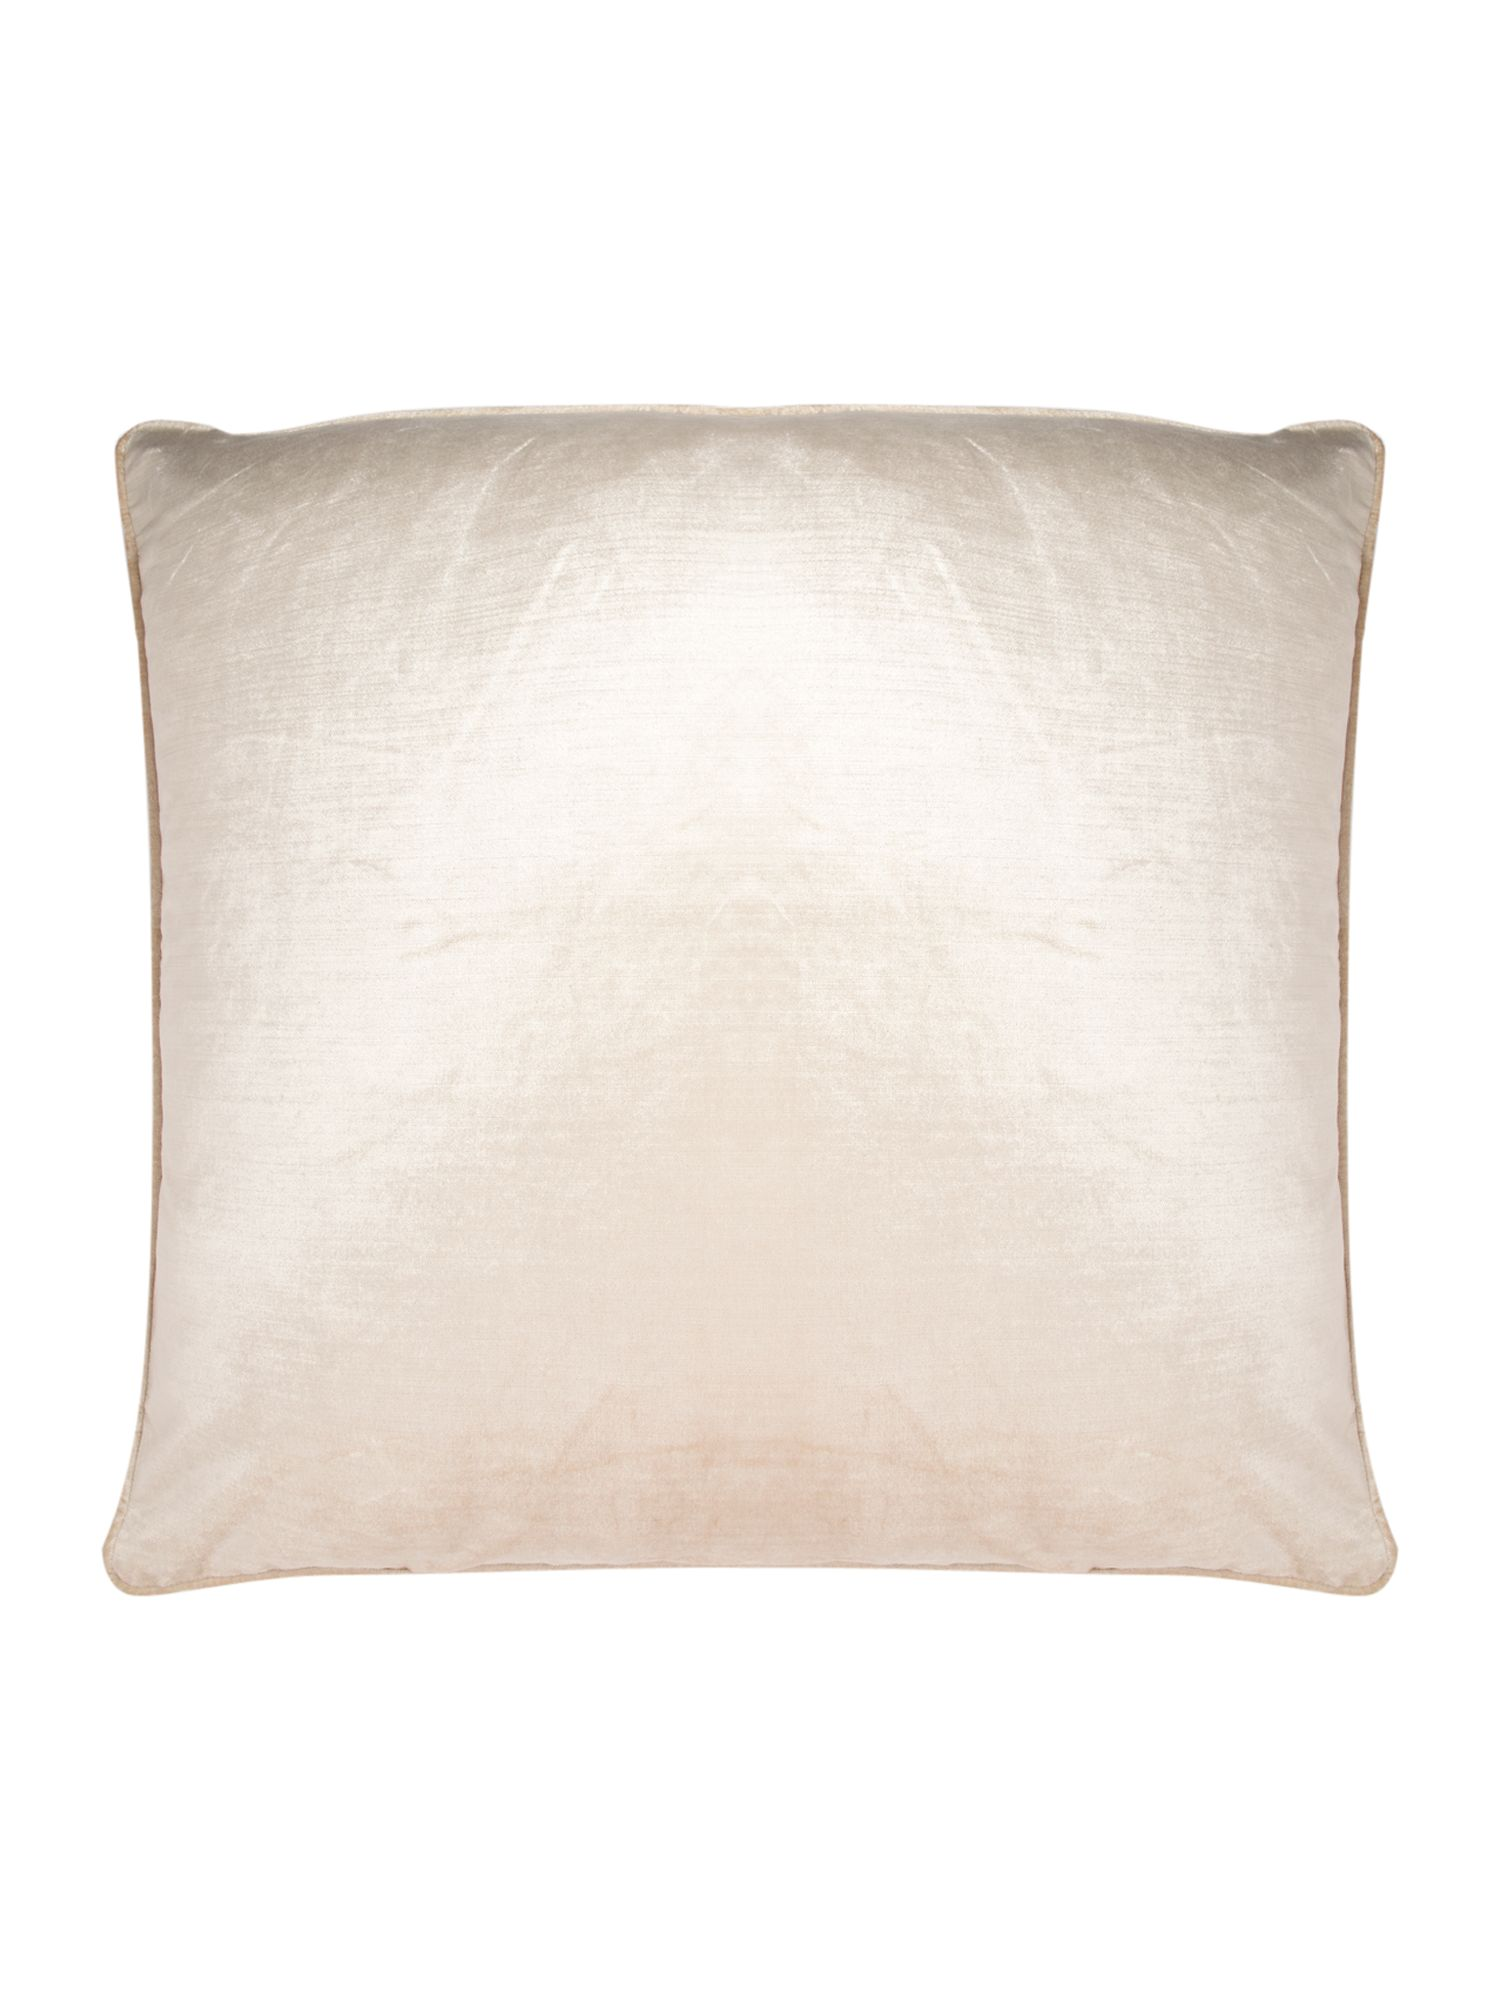 Oversized cream velvet cushion